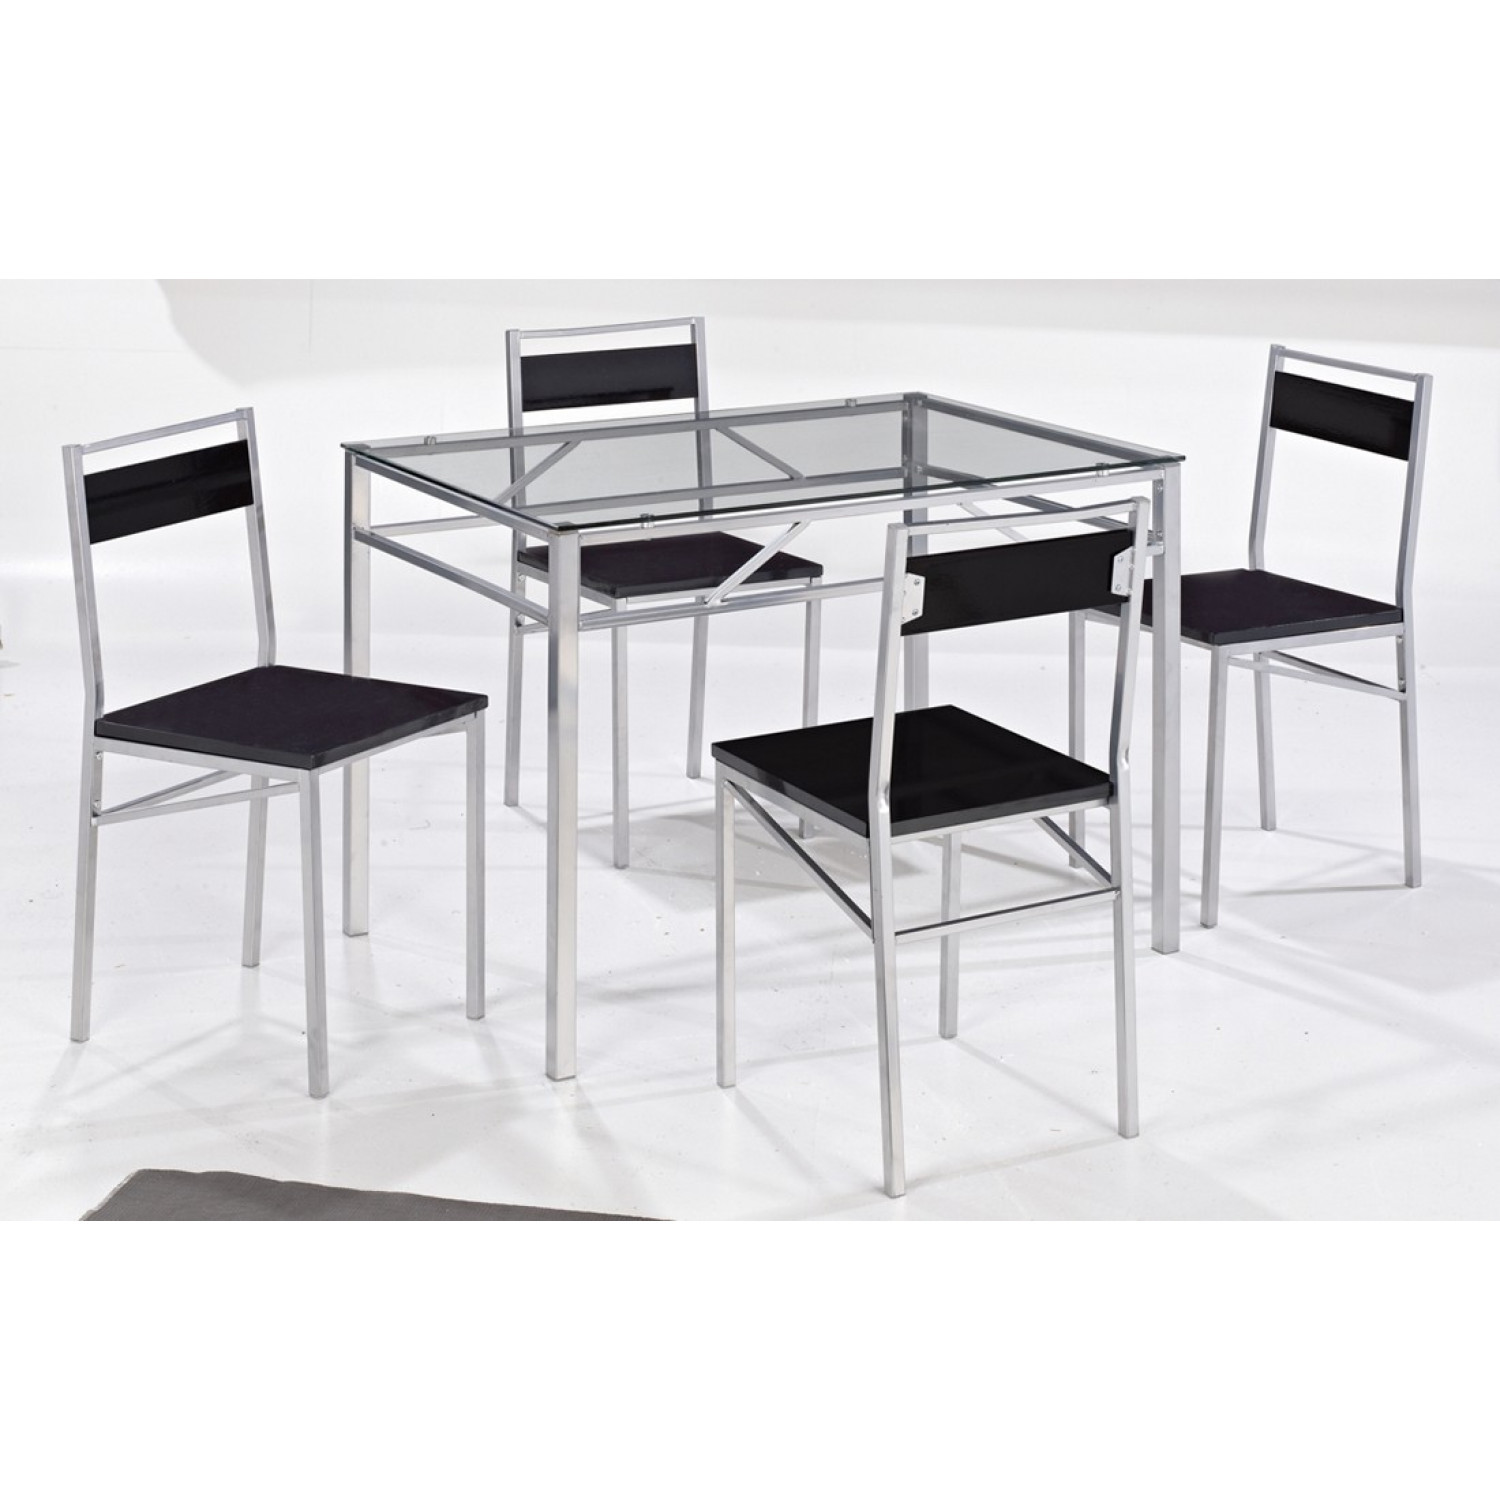 Tokyo 4 Seater Dining Set   Glass Dining Table U0026 4 Dining Chairs   Black  Silver